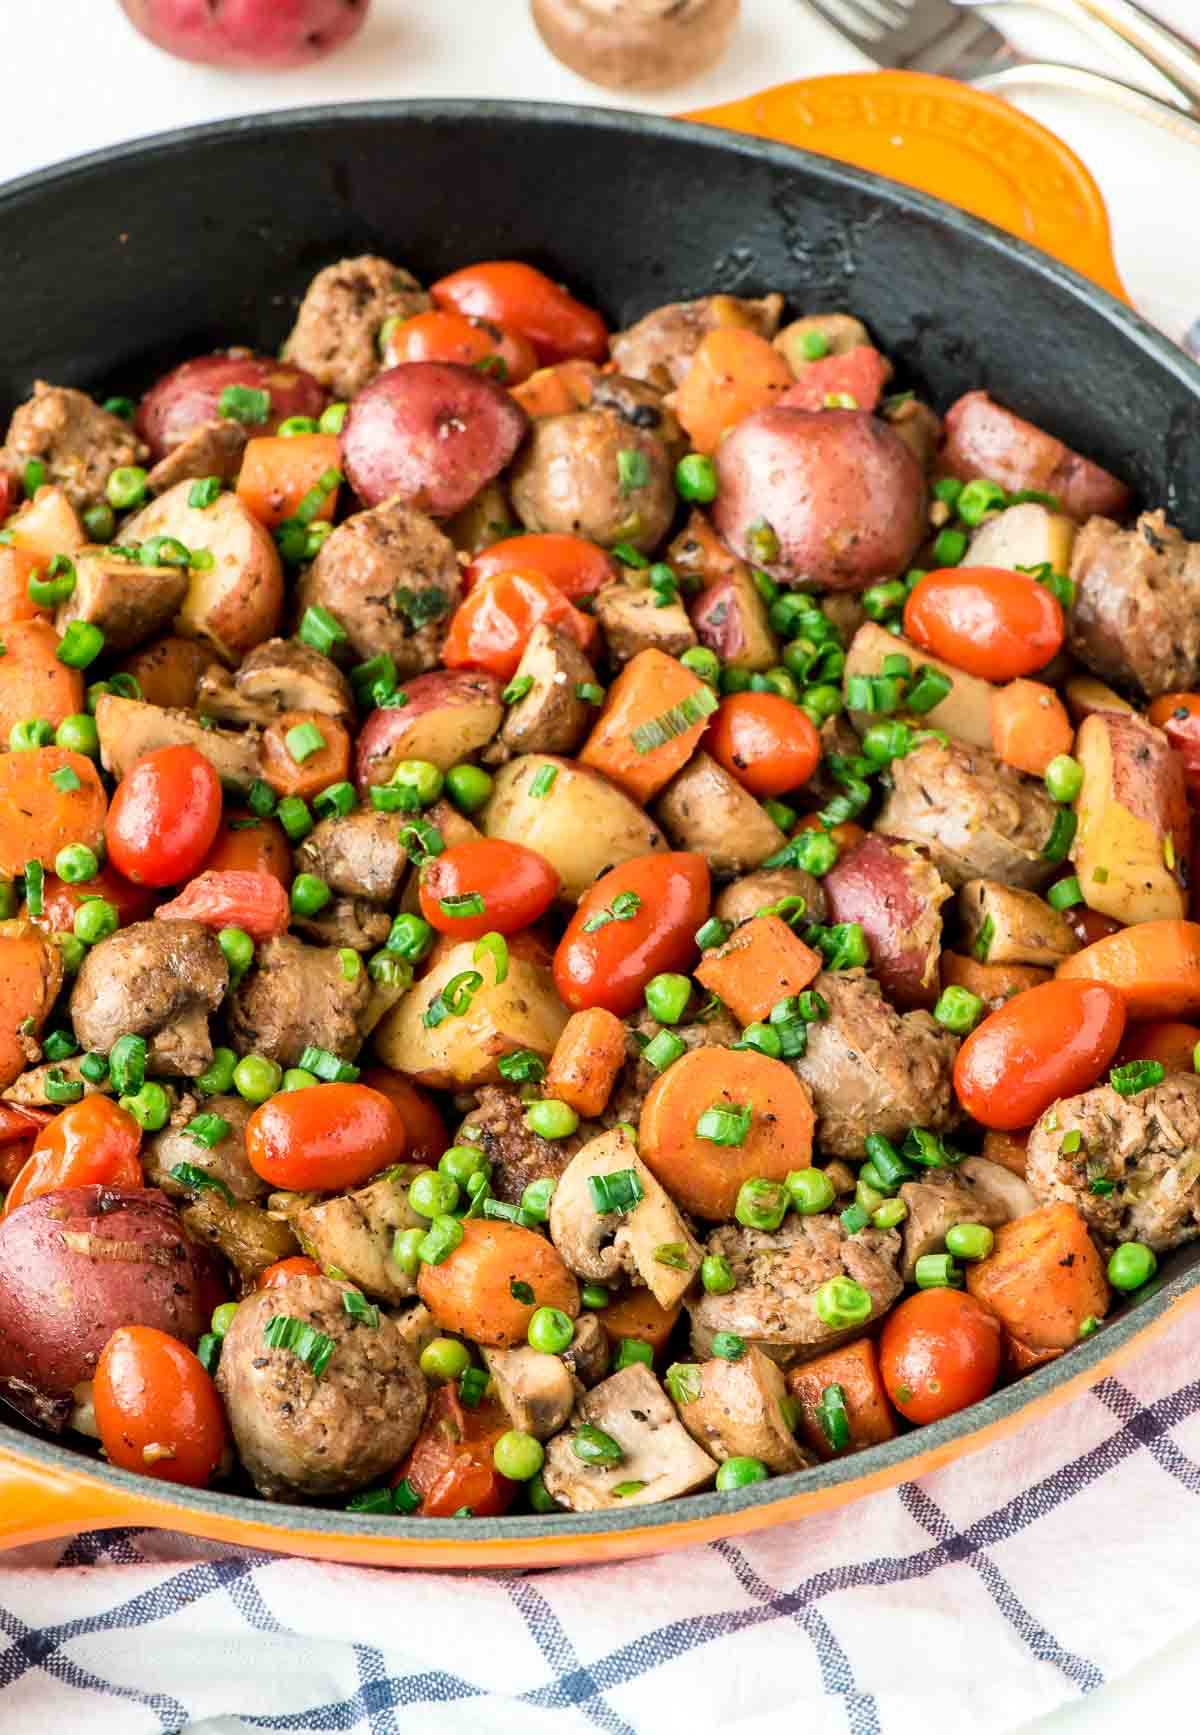 An easy On Pan Italian Sausage Skilled filled with fresh veggies, smoky sausage, and potatoes. Nutritious, filling, and you'll only have one pan to wash! Perfect for an easy dinner. @wellplated